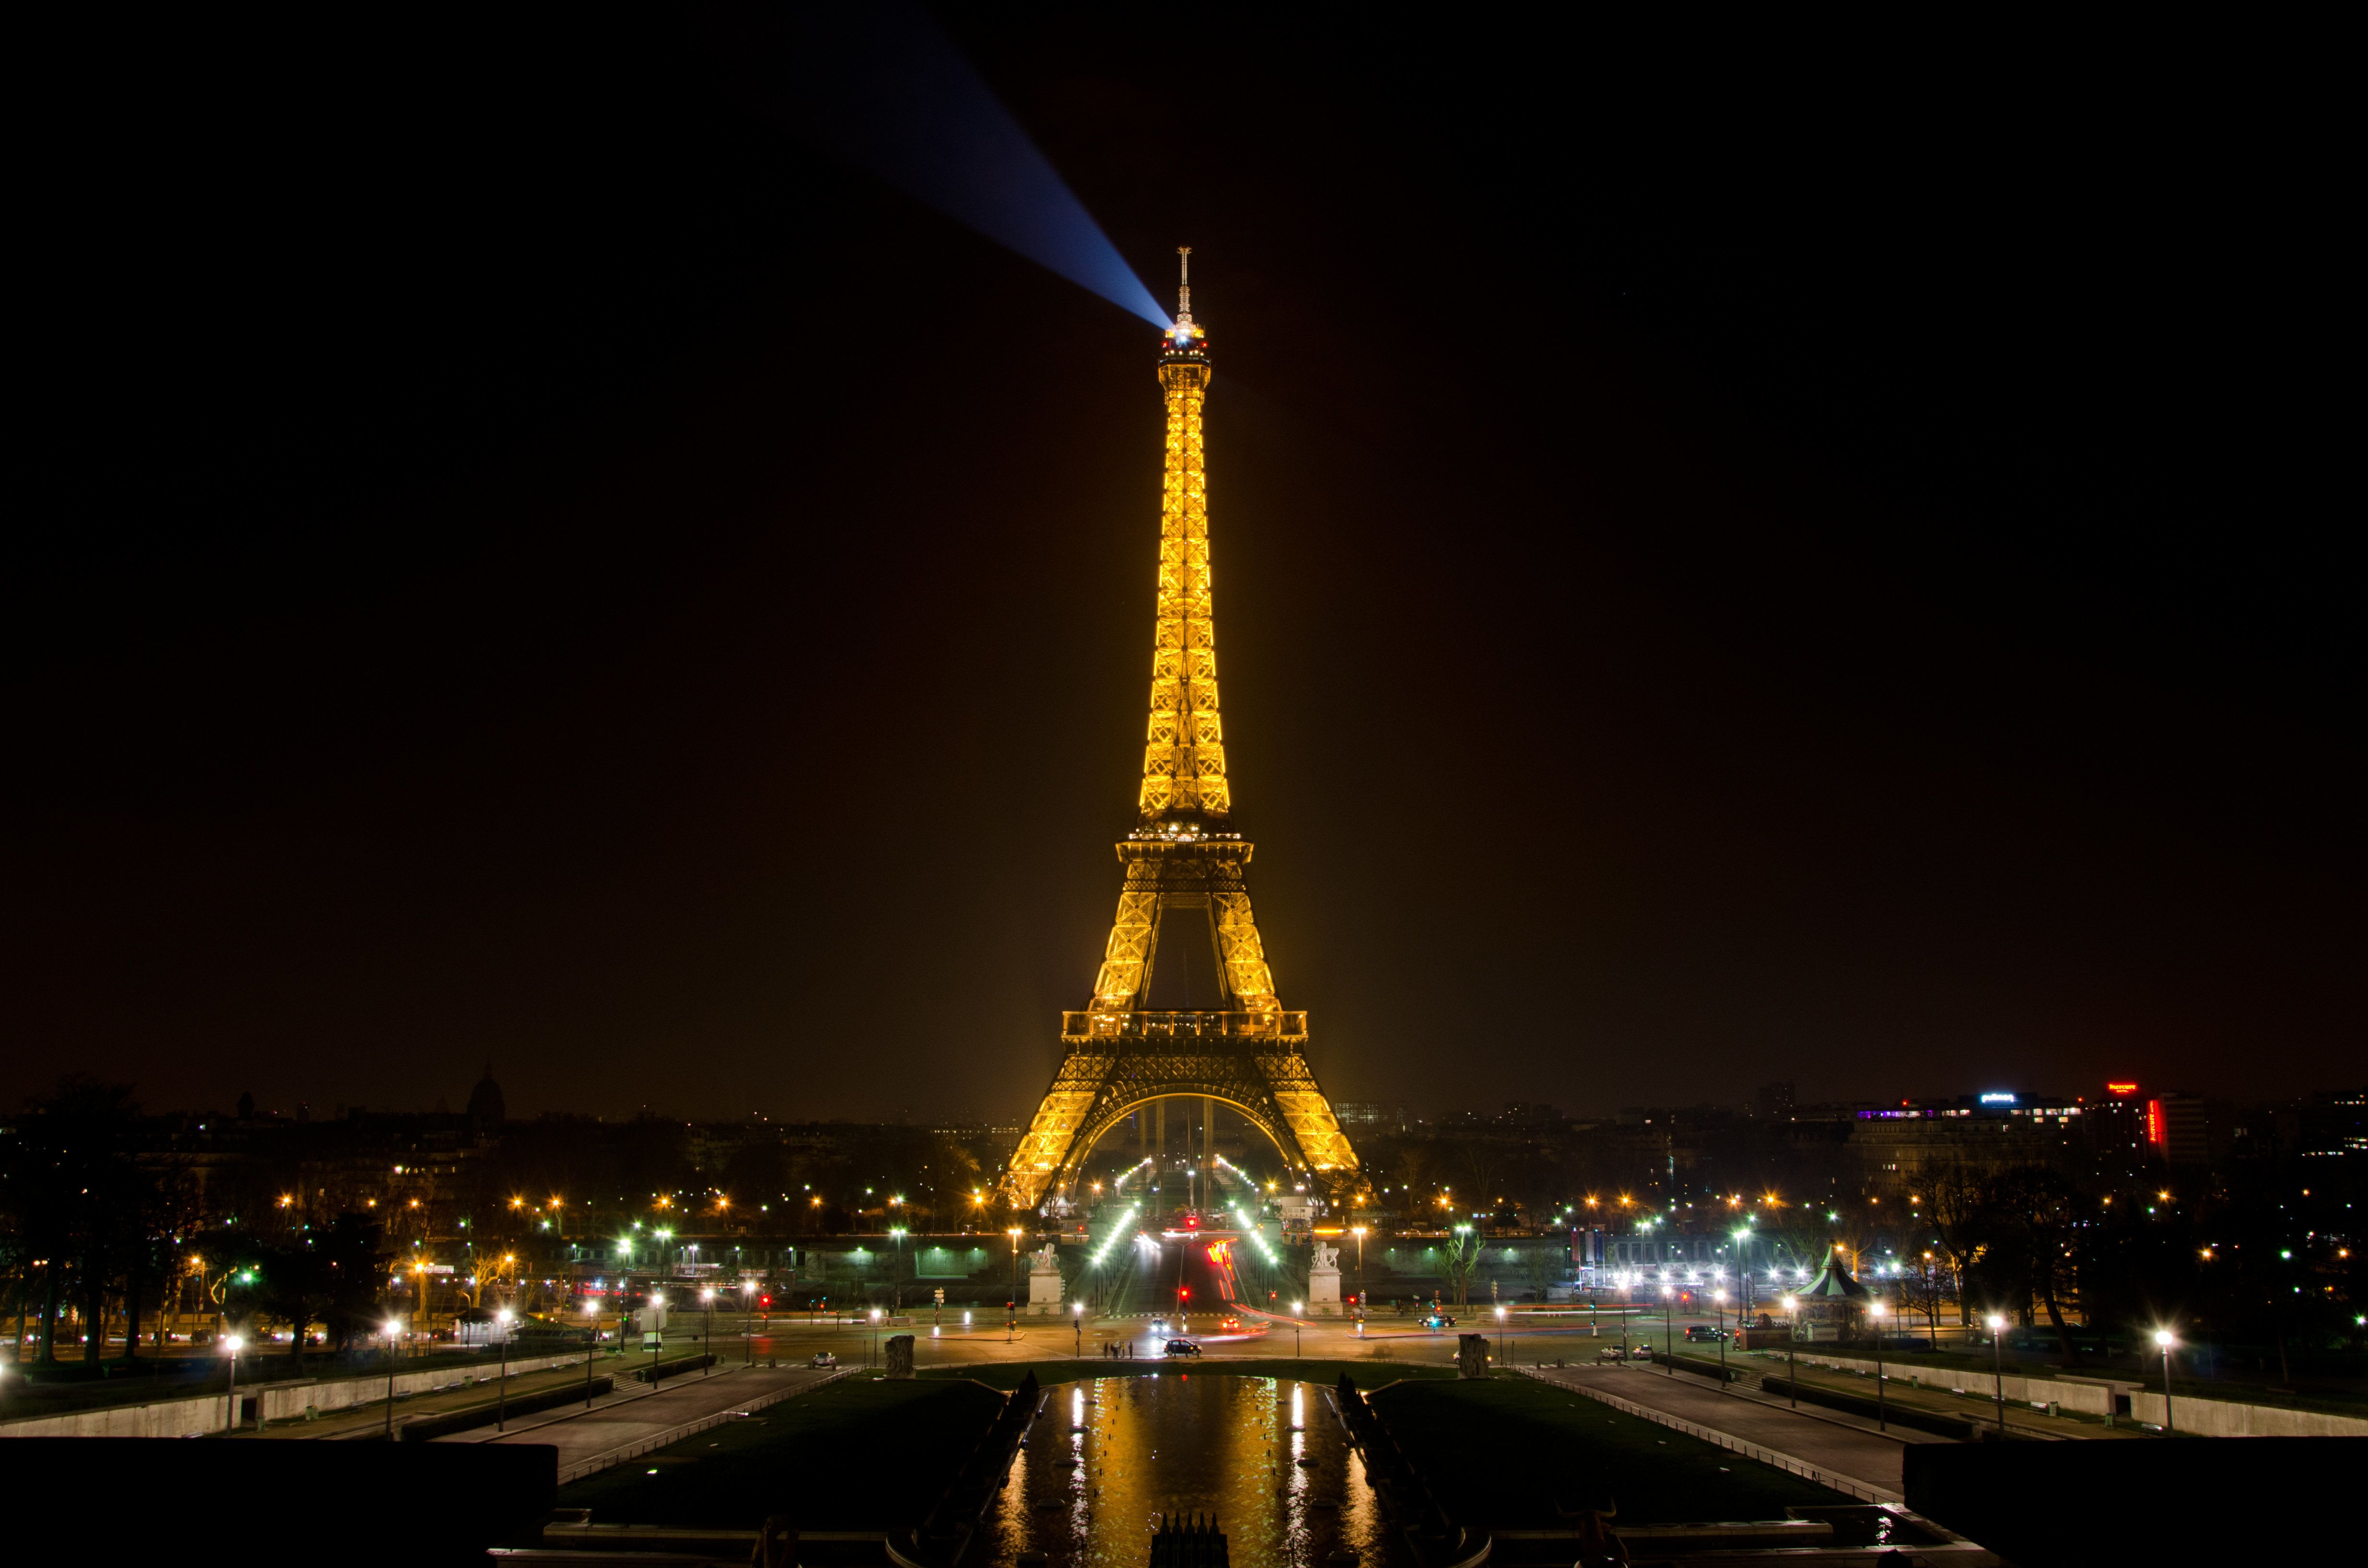 Most tourists probably aren't aware of the complicated copyright implications of nighttime Eiffel Tower photography.